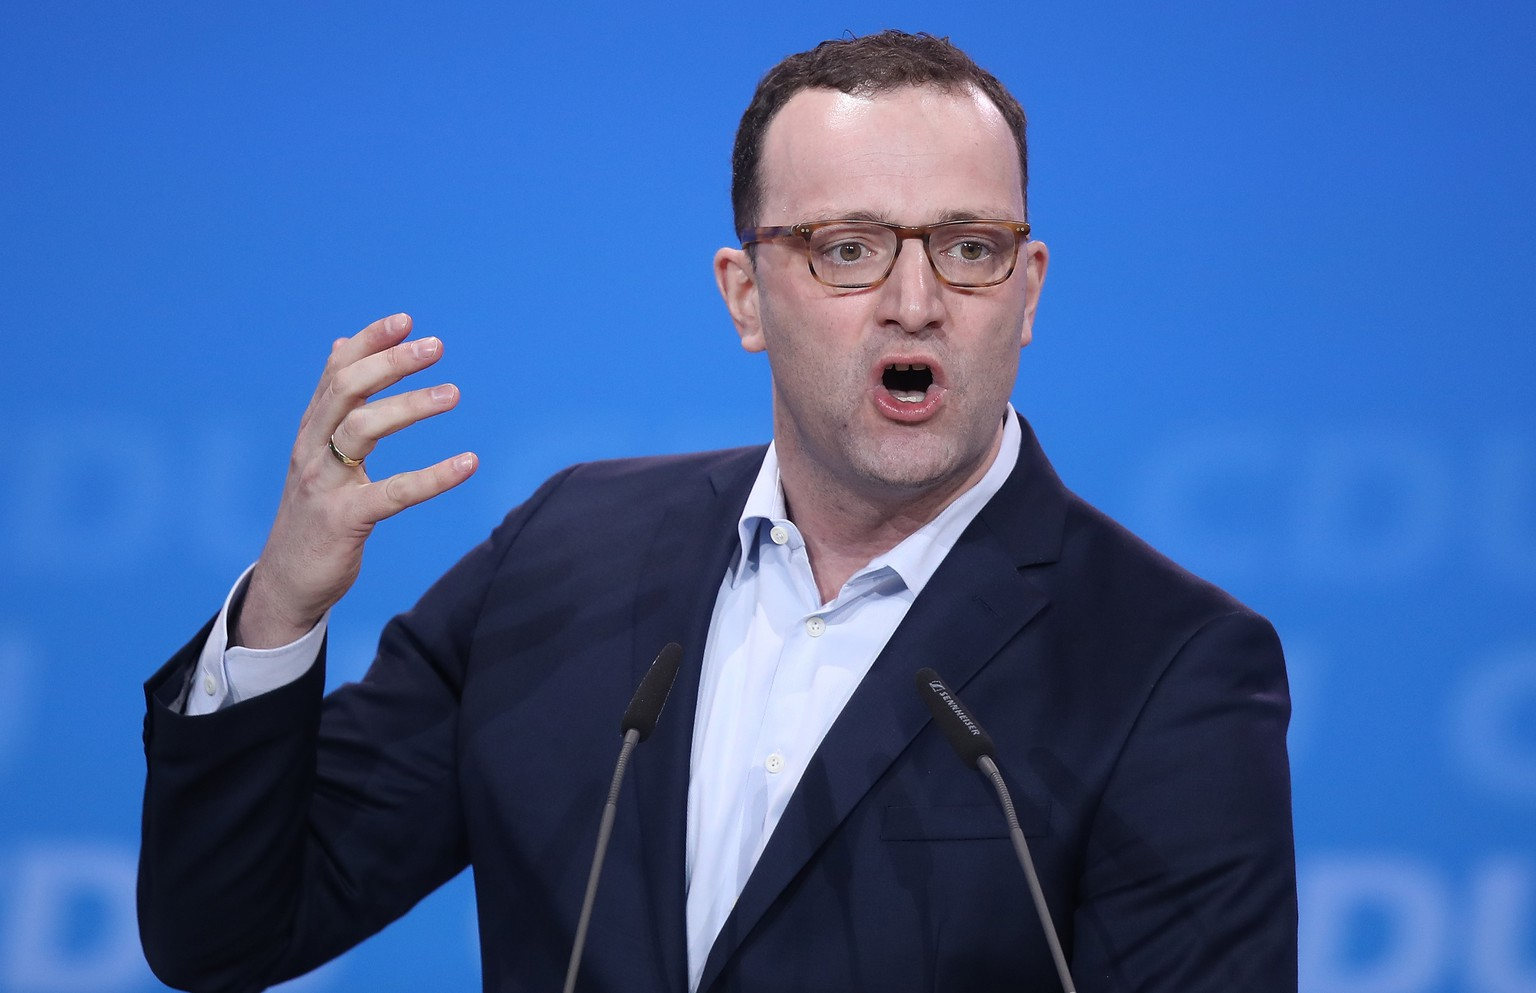 BERLIN, GERMANY - FEBRUARY 26:  Jens Spahn, who has been an outspoken critic of Chancellor and CDU Chairwoman Angela Merkel and who is slated to become the next German health minister, speaks under a slogan that raeds: